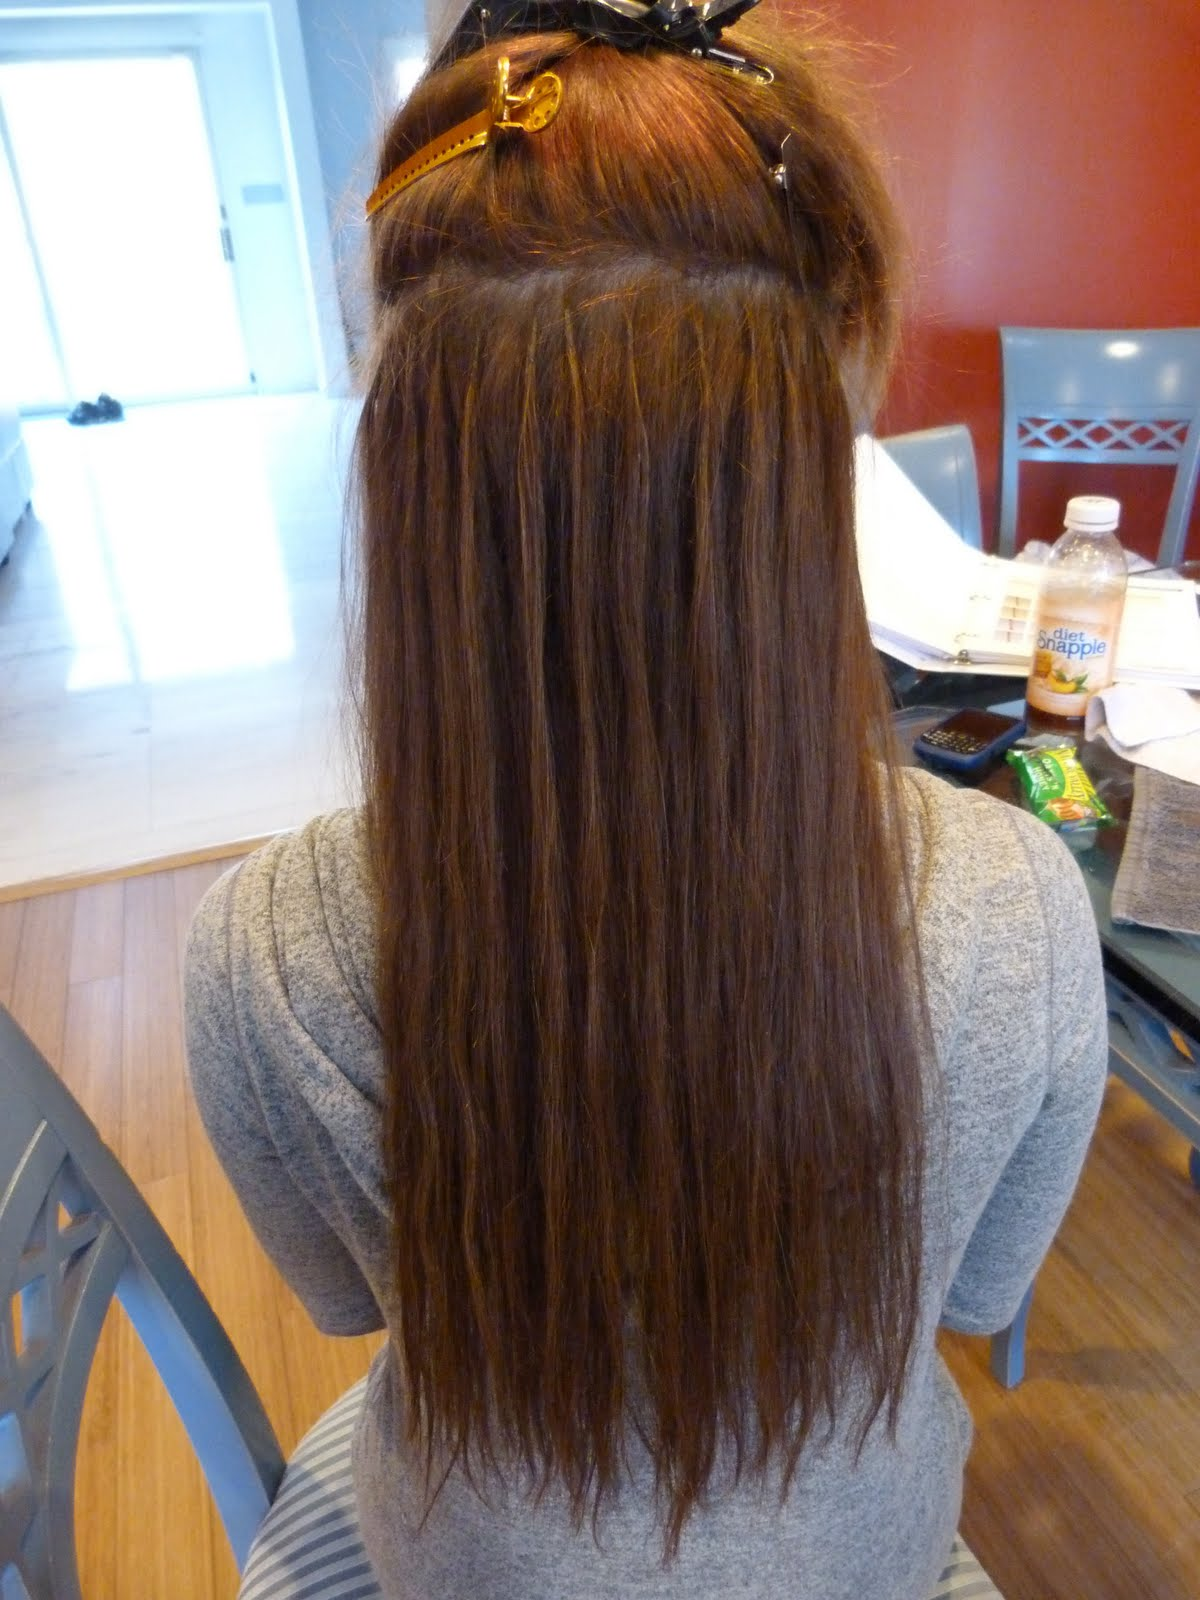 Great Lengths of Hair Extensions